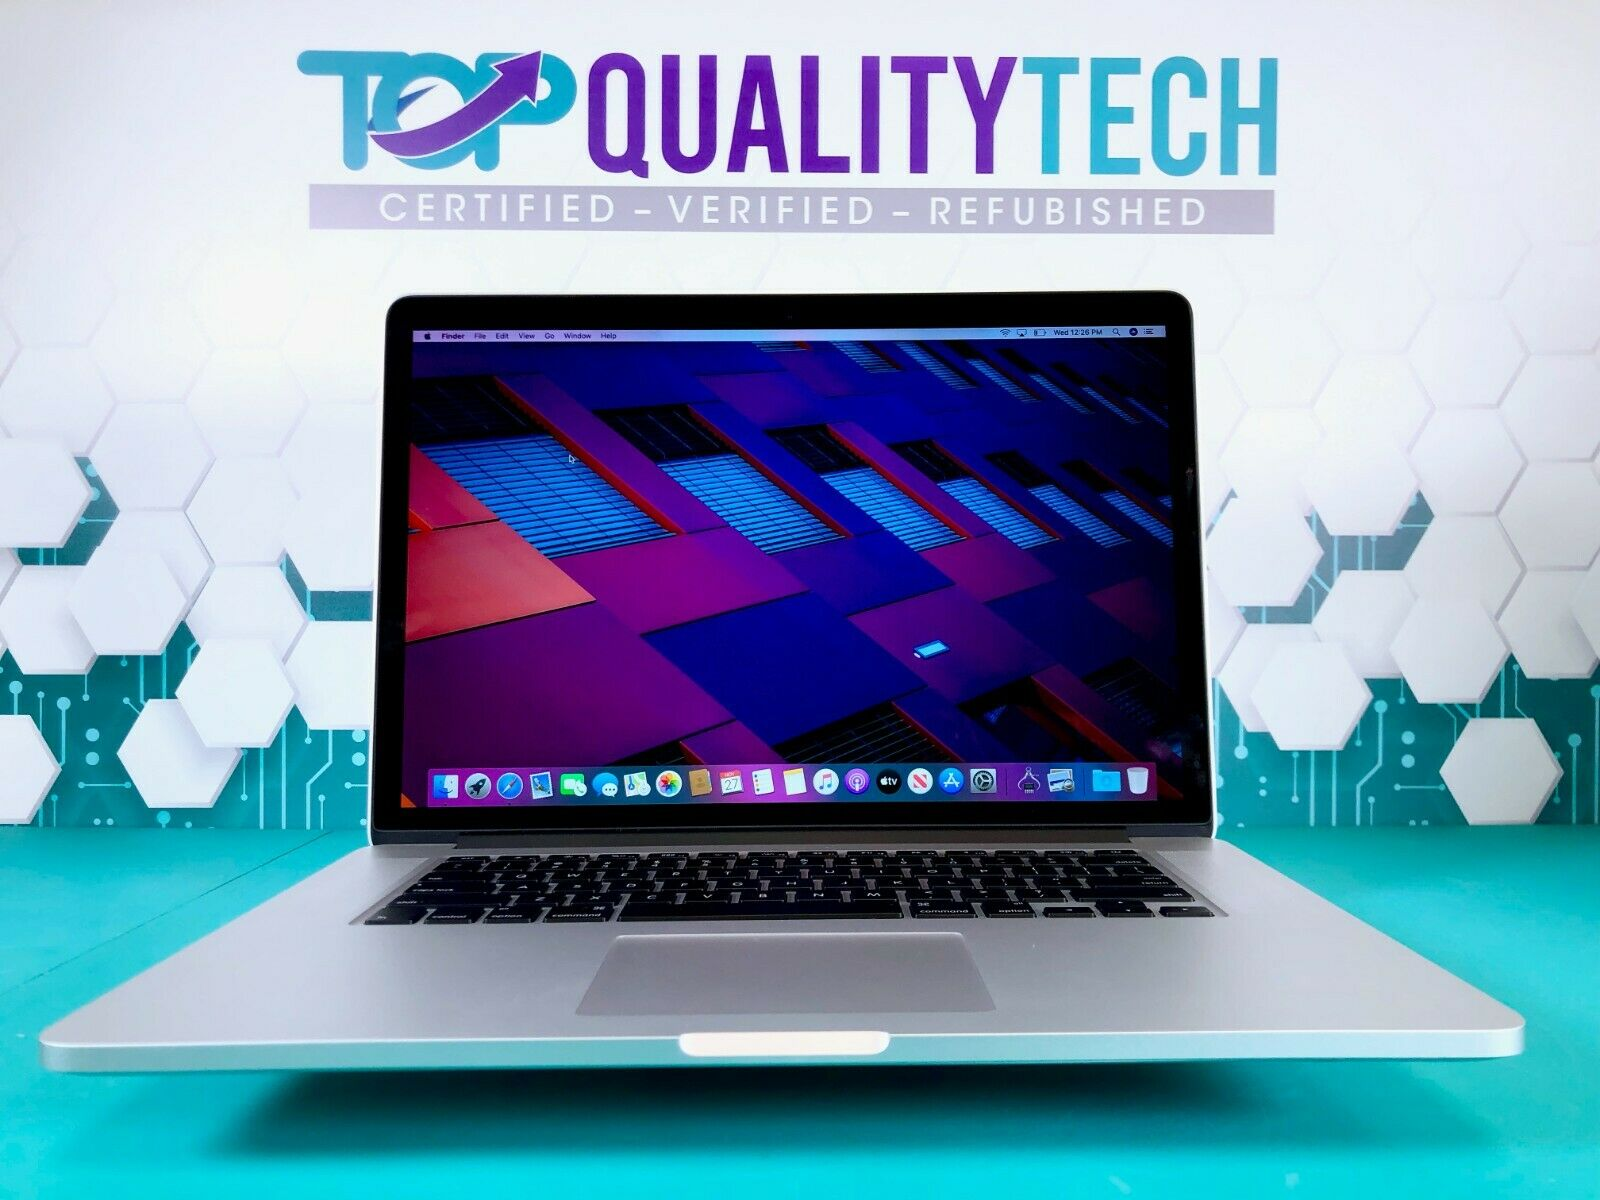 ULTRA Apple MacBook Pro 15 RETINA / 512GB SSD / CORE i7 / GRAY / WARRANTY. Buy it now for 899.00